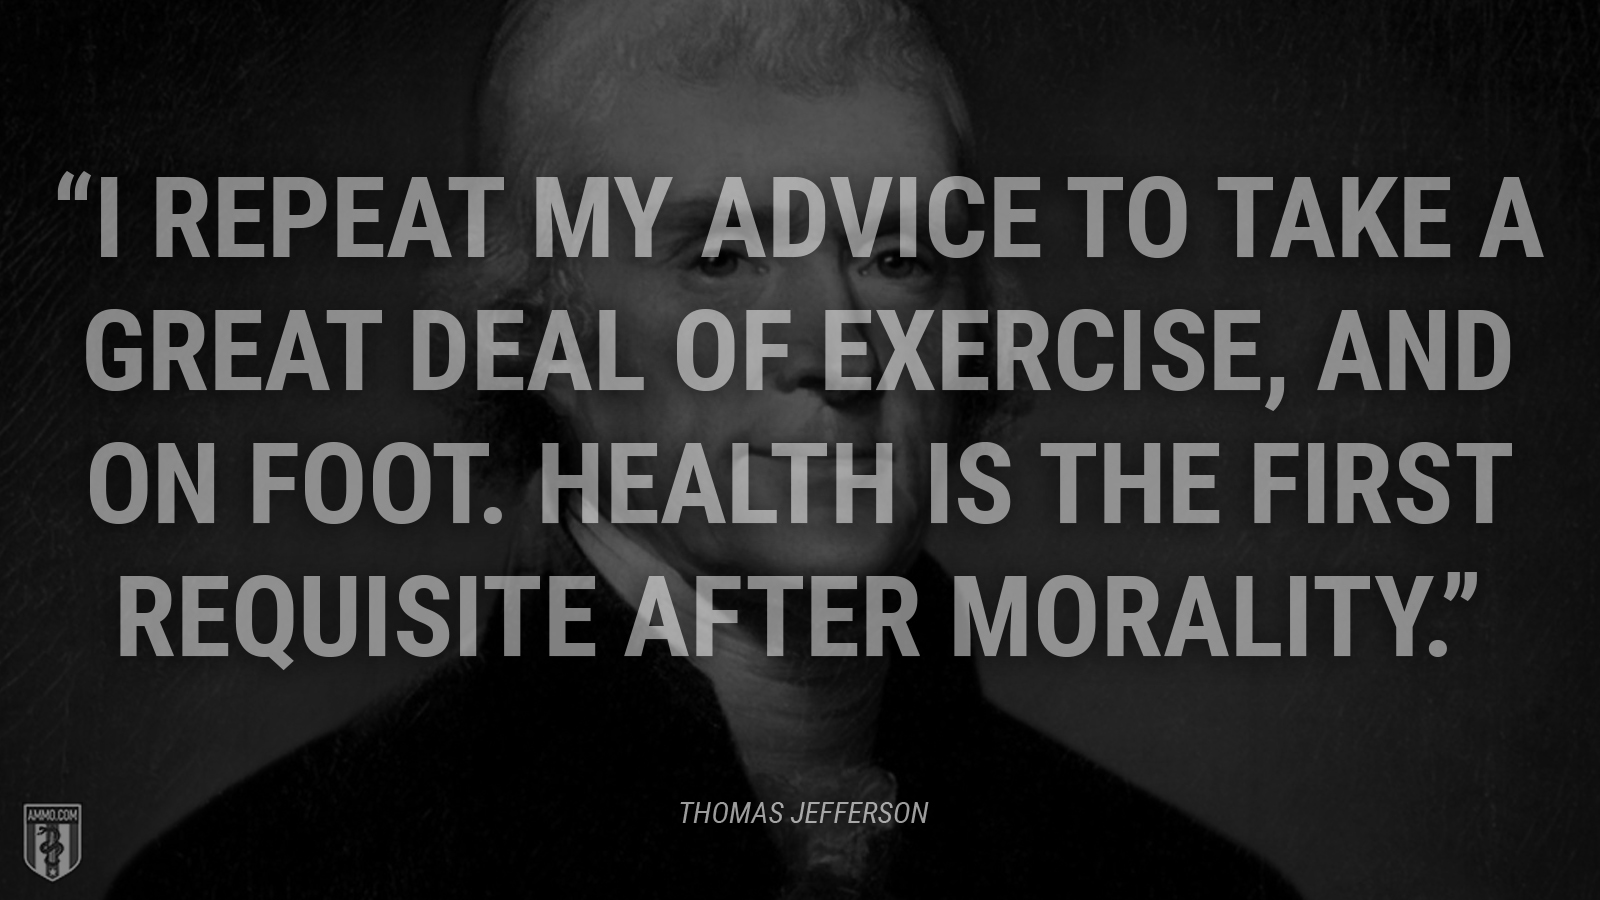 """""""I repeat my advice to take a great deal of exercise, and on foot. Health is the first requisite after morality."""" - Thomas Jefferson"""